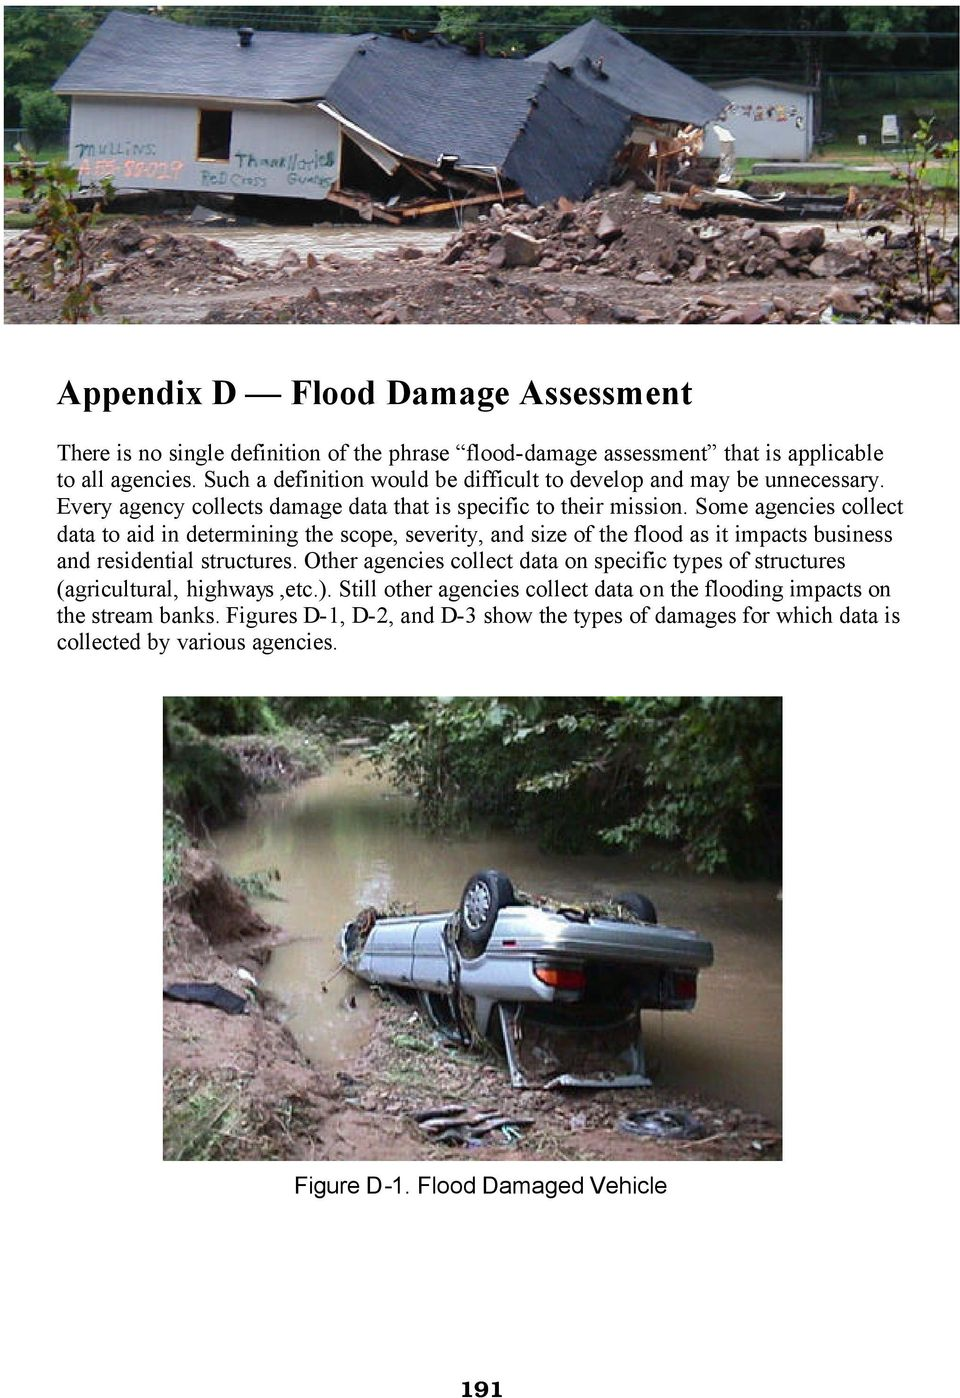 Some agencies collect data to aid in determining the scope, severity, and size of the flood as it impacts business and residential structures.